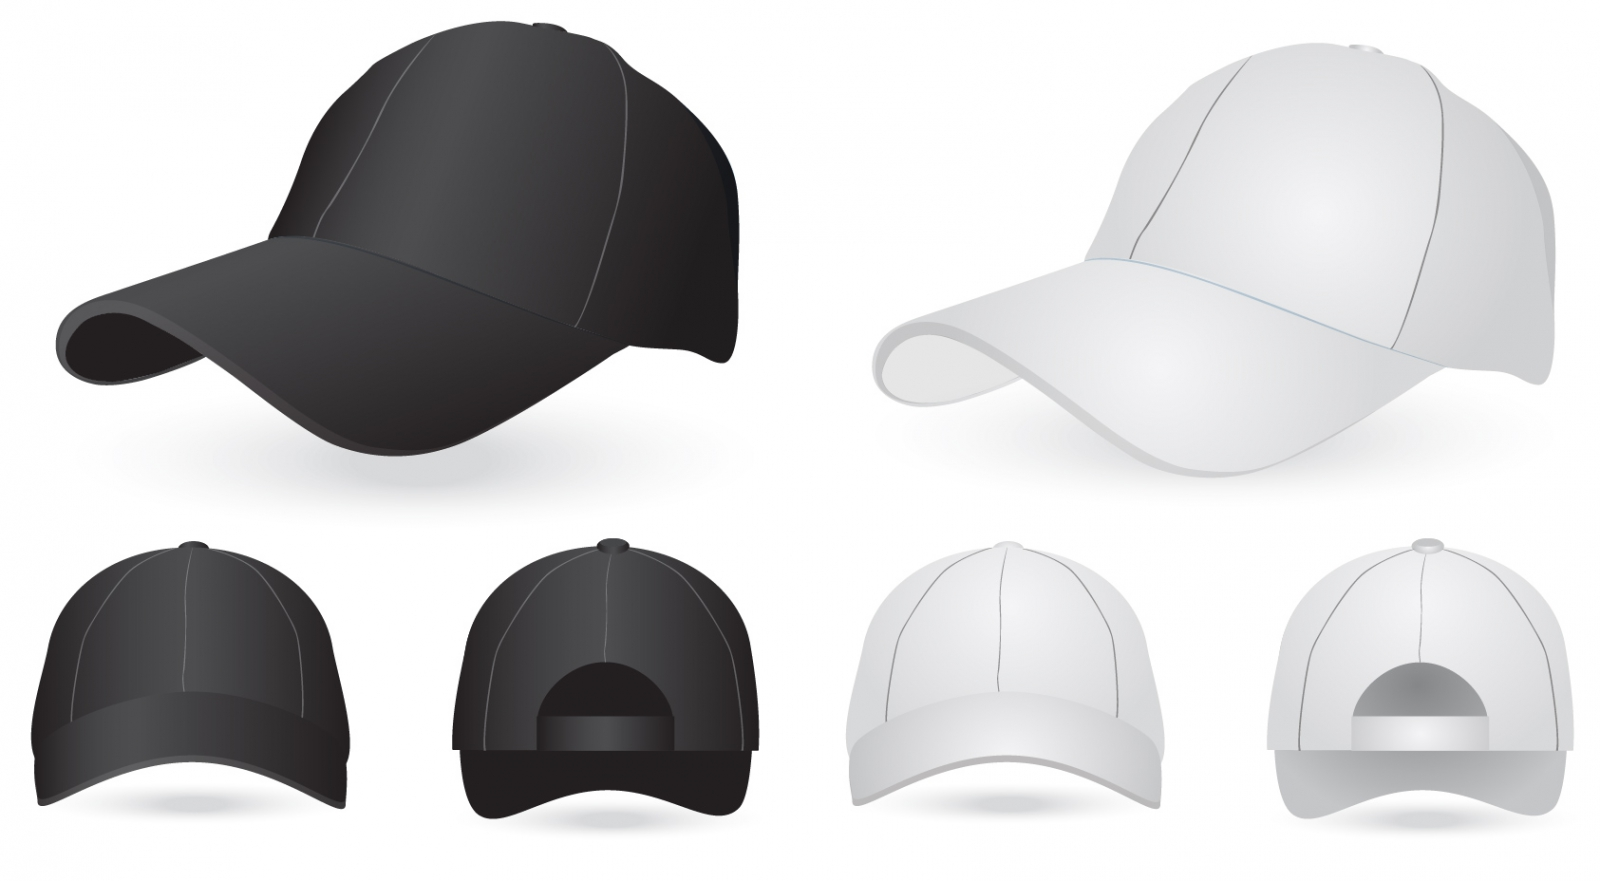 6 Panel Hat Template Images - Template Design Ideas